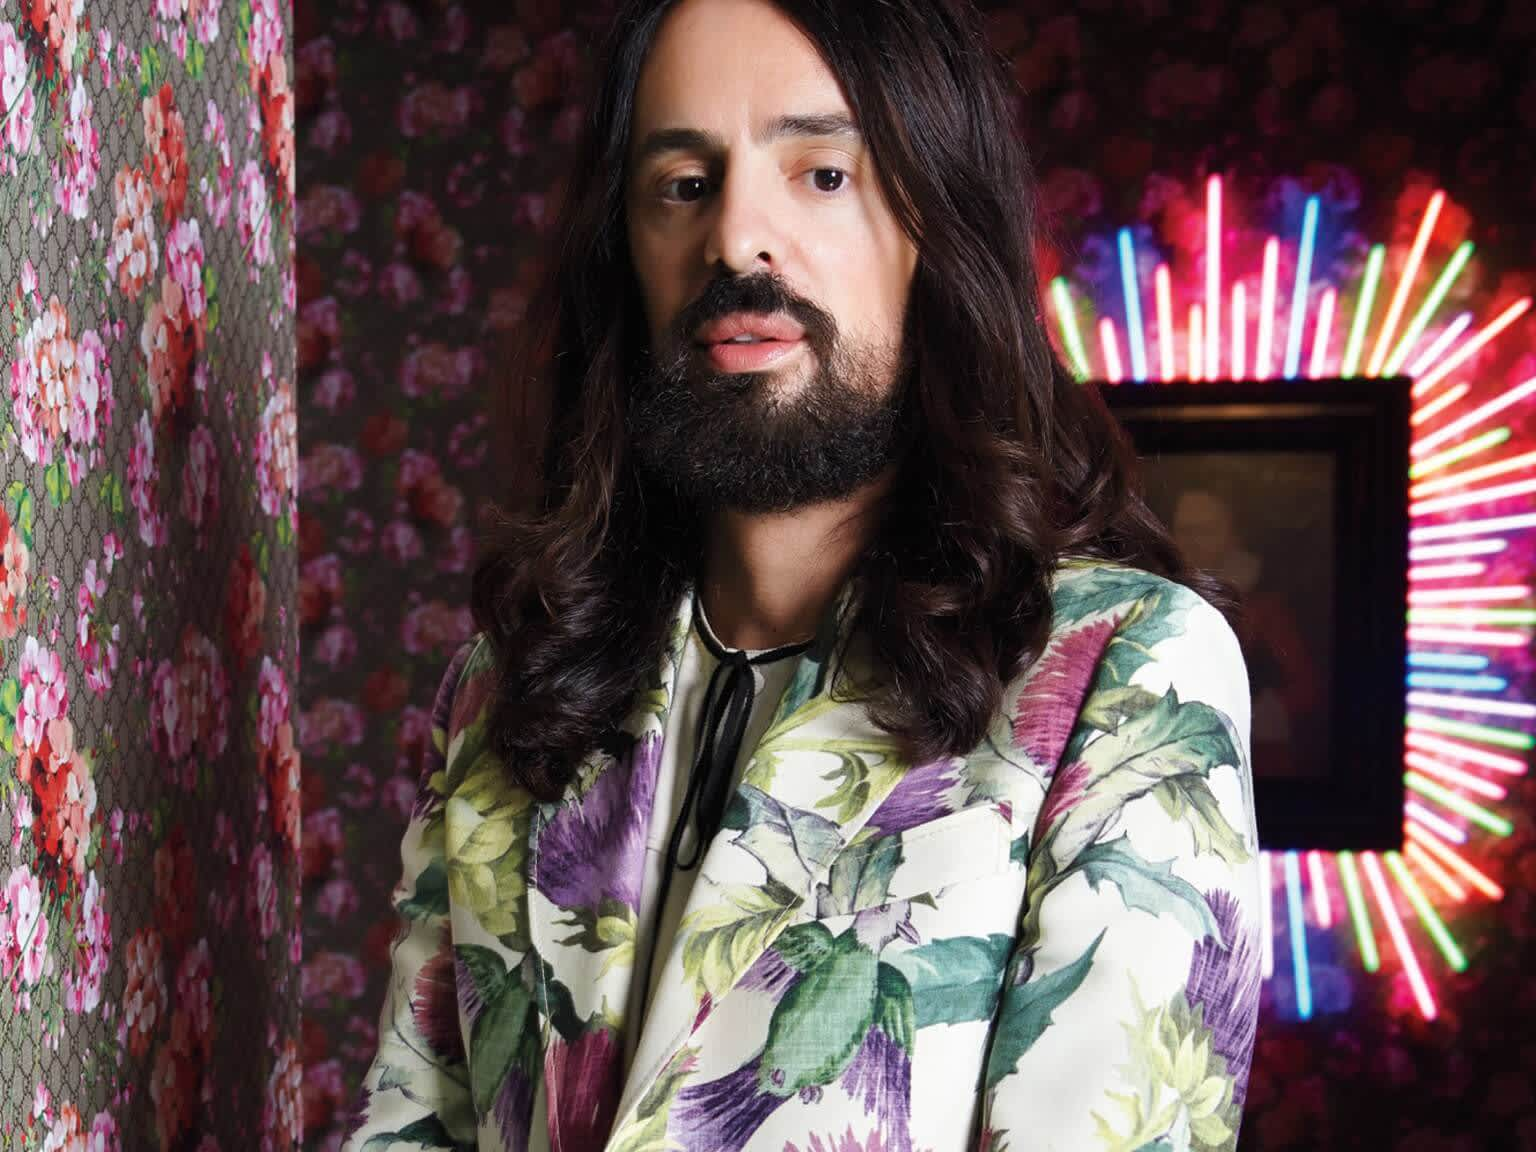 How Gucci's Alessandro Michele Overcame Bullying at School